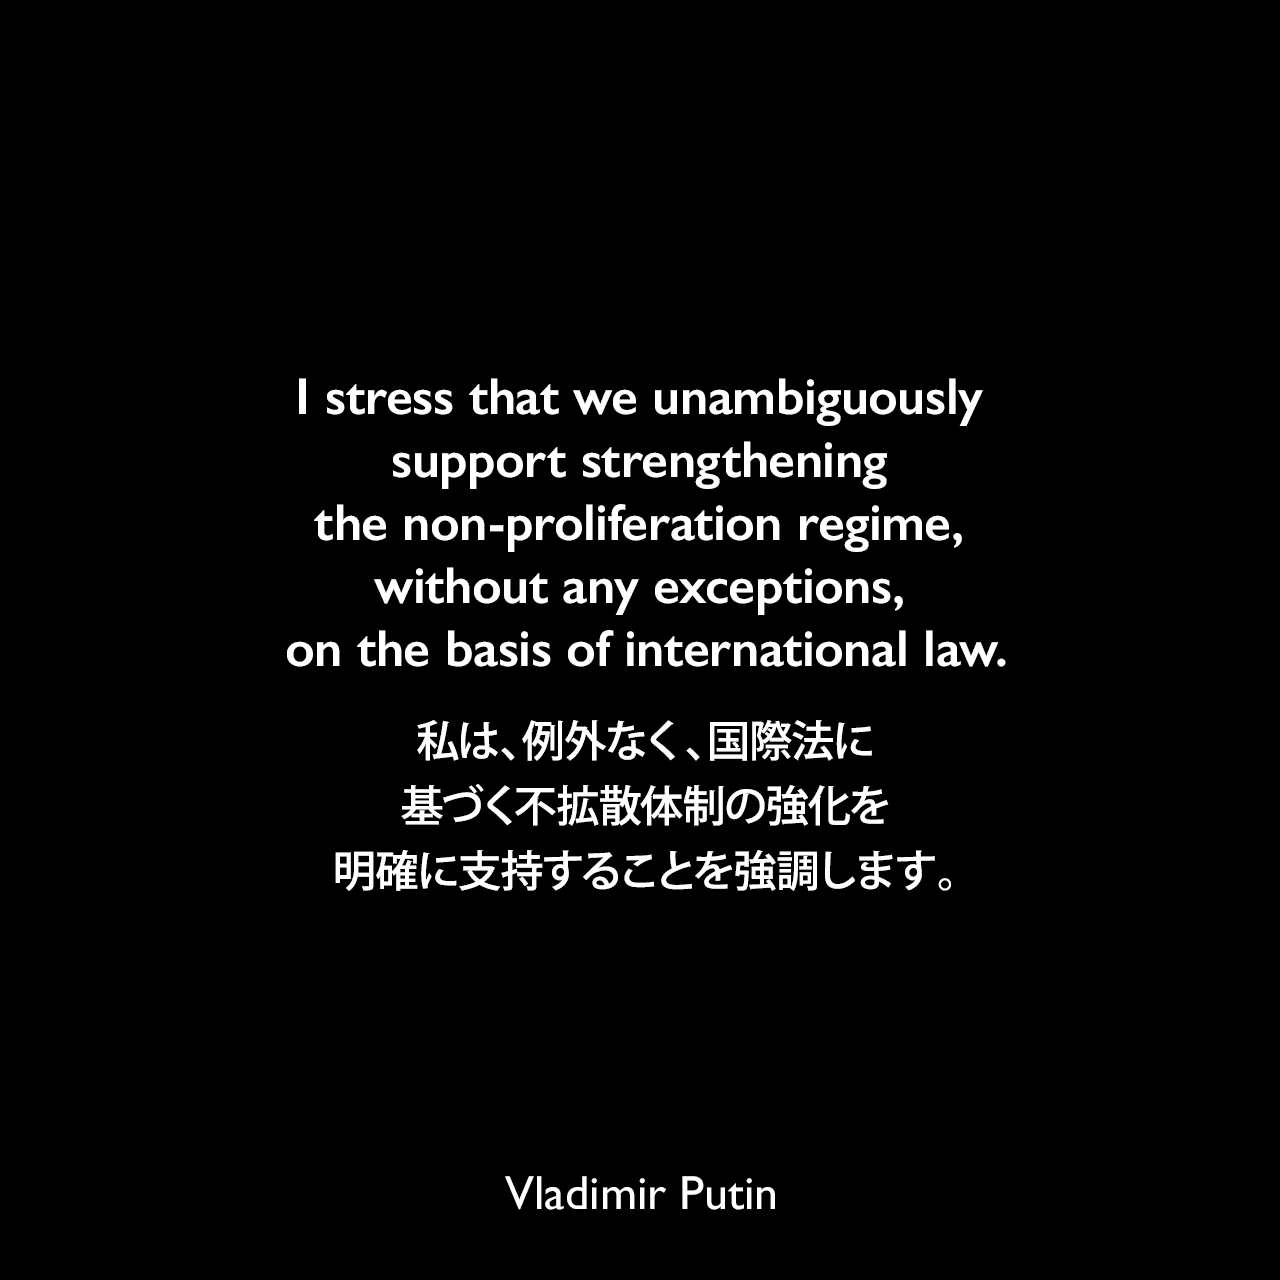 I stress that we unambiguously support strengthening the non-proliferation regime, without any exceptions, on the basis of international law.私は、例外なく、国際法に基づく不拡散体制の強化を明確に支持することを強調します。- 2006年5月「kremlin.ru」よりVladimir Putin